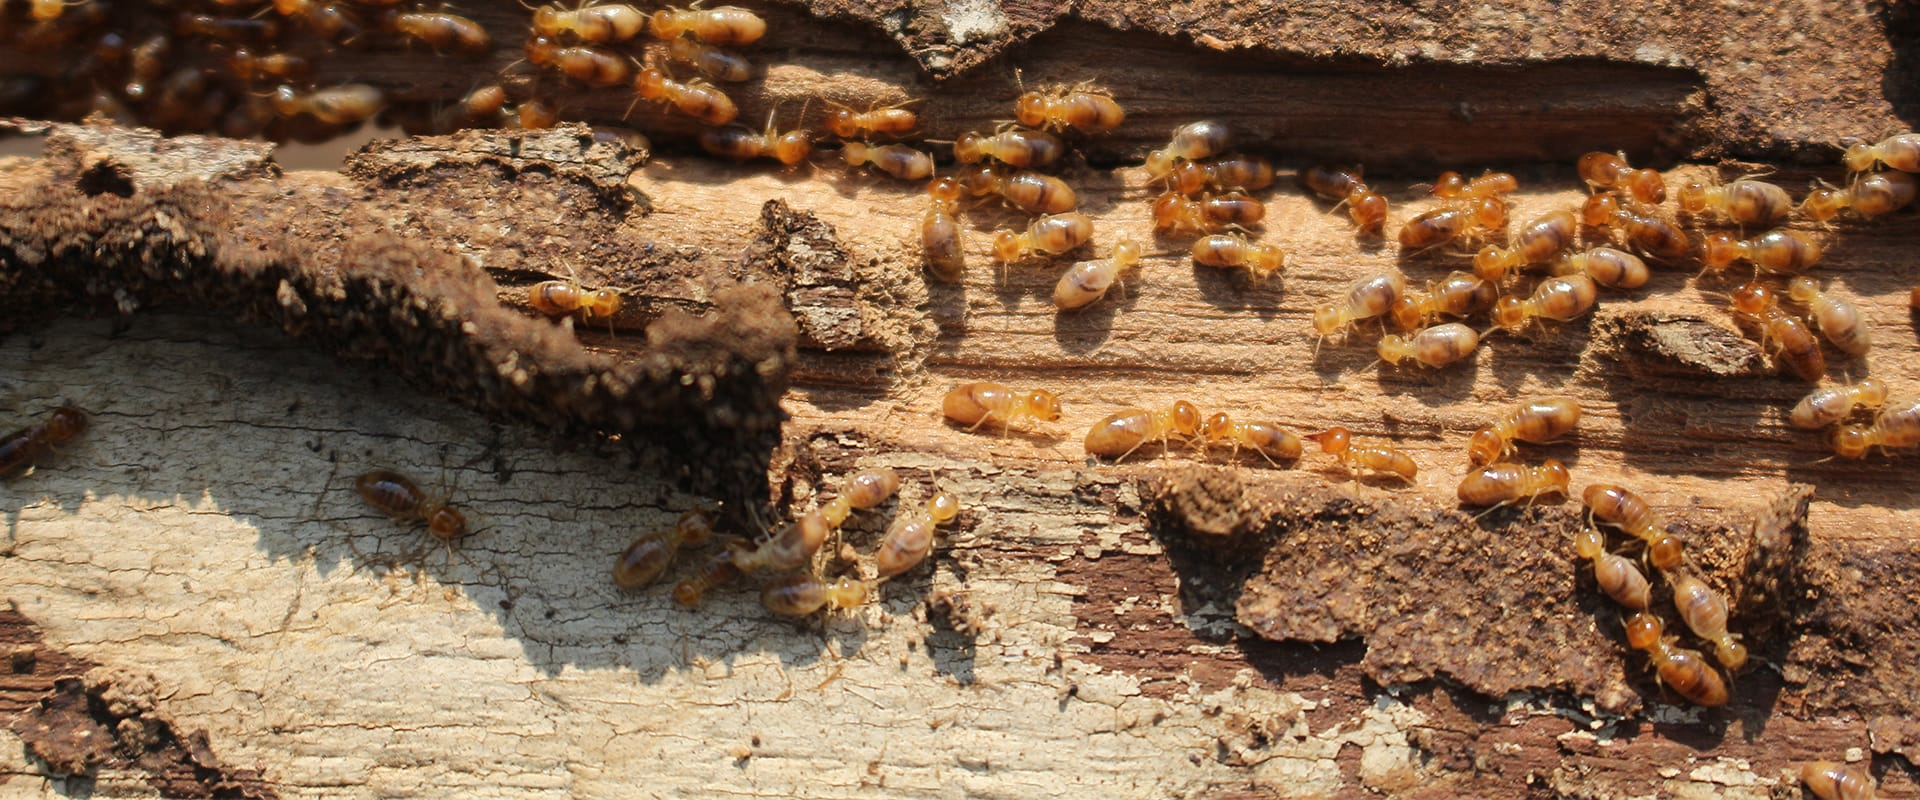 a termite infestation on a wooden structure outside of a home in dallas texas